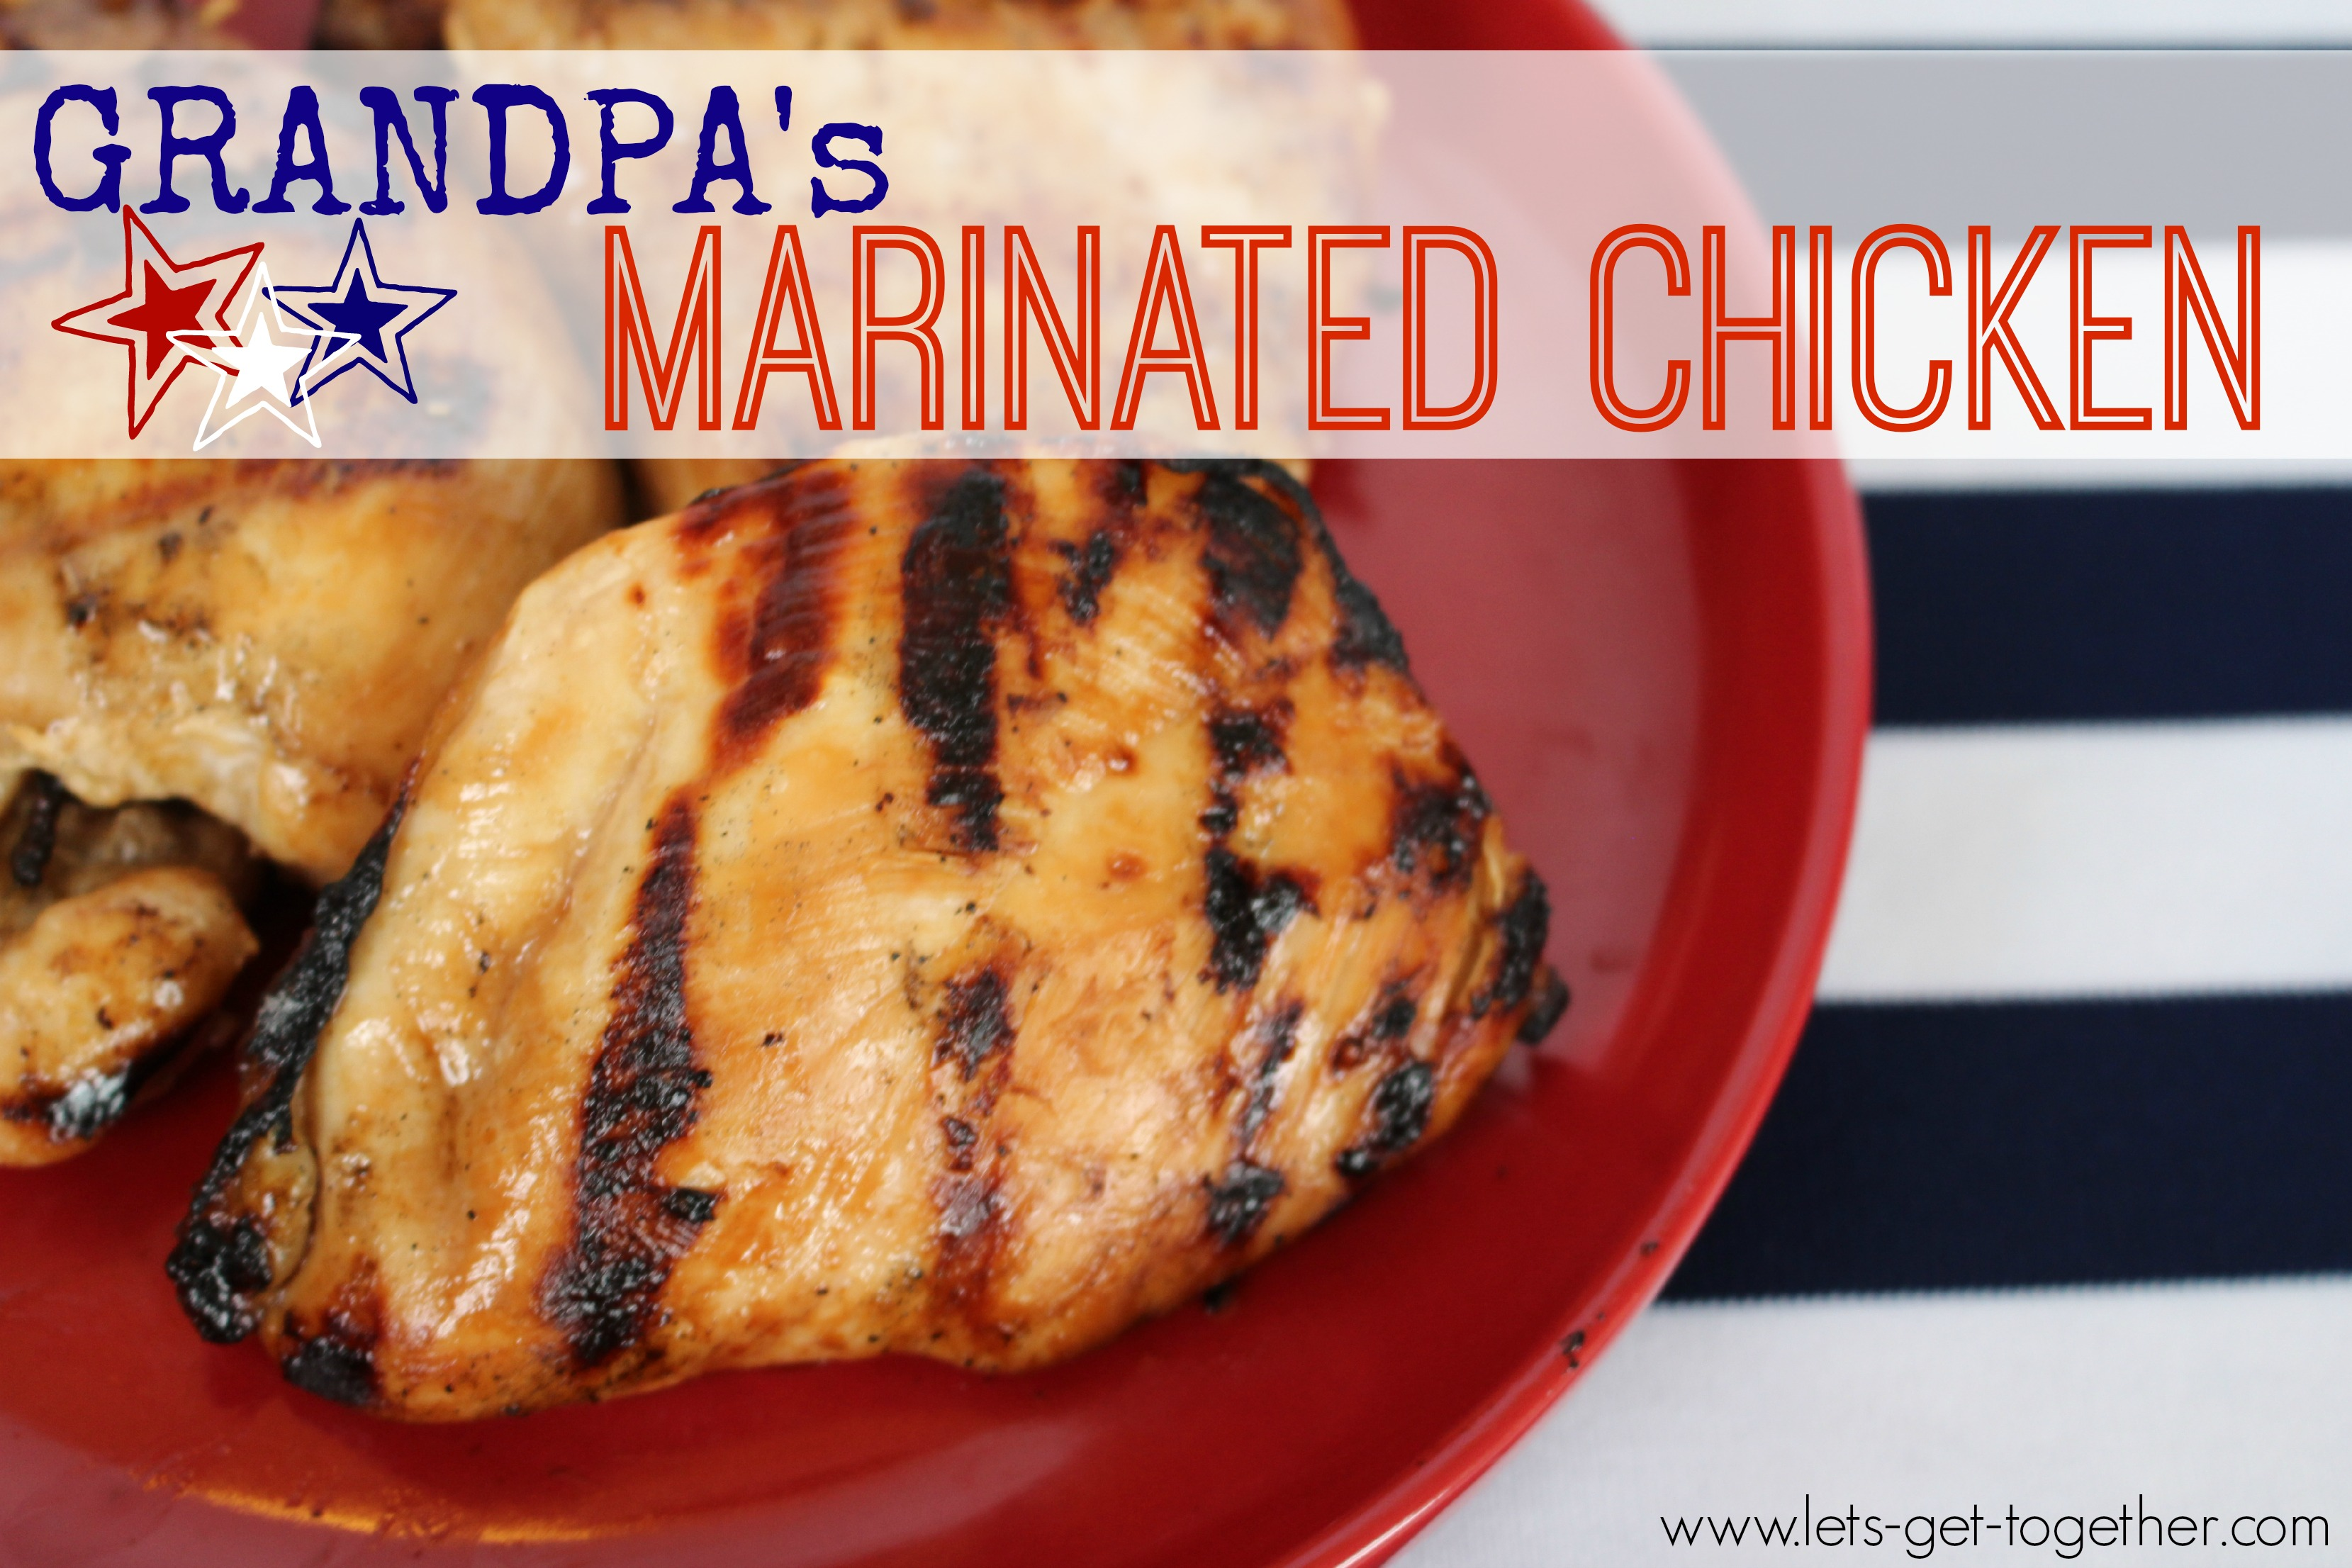 Grandpa's Marinated Chicken from Let's Get Together